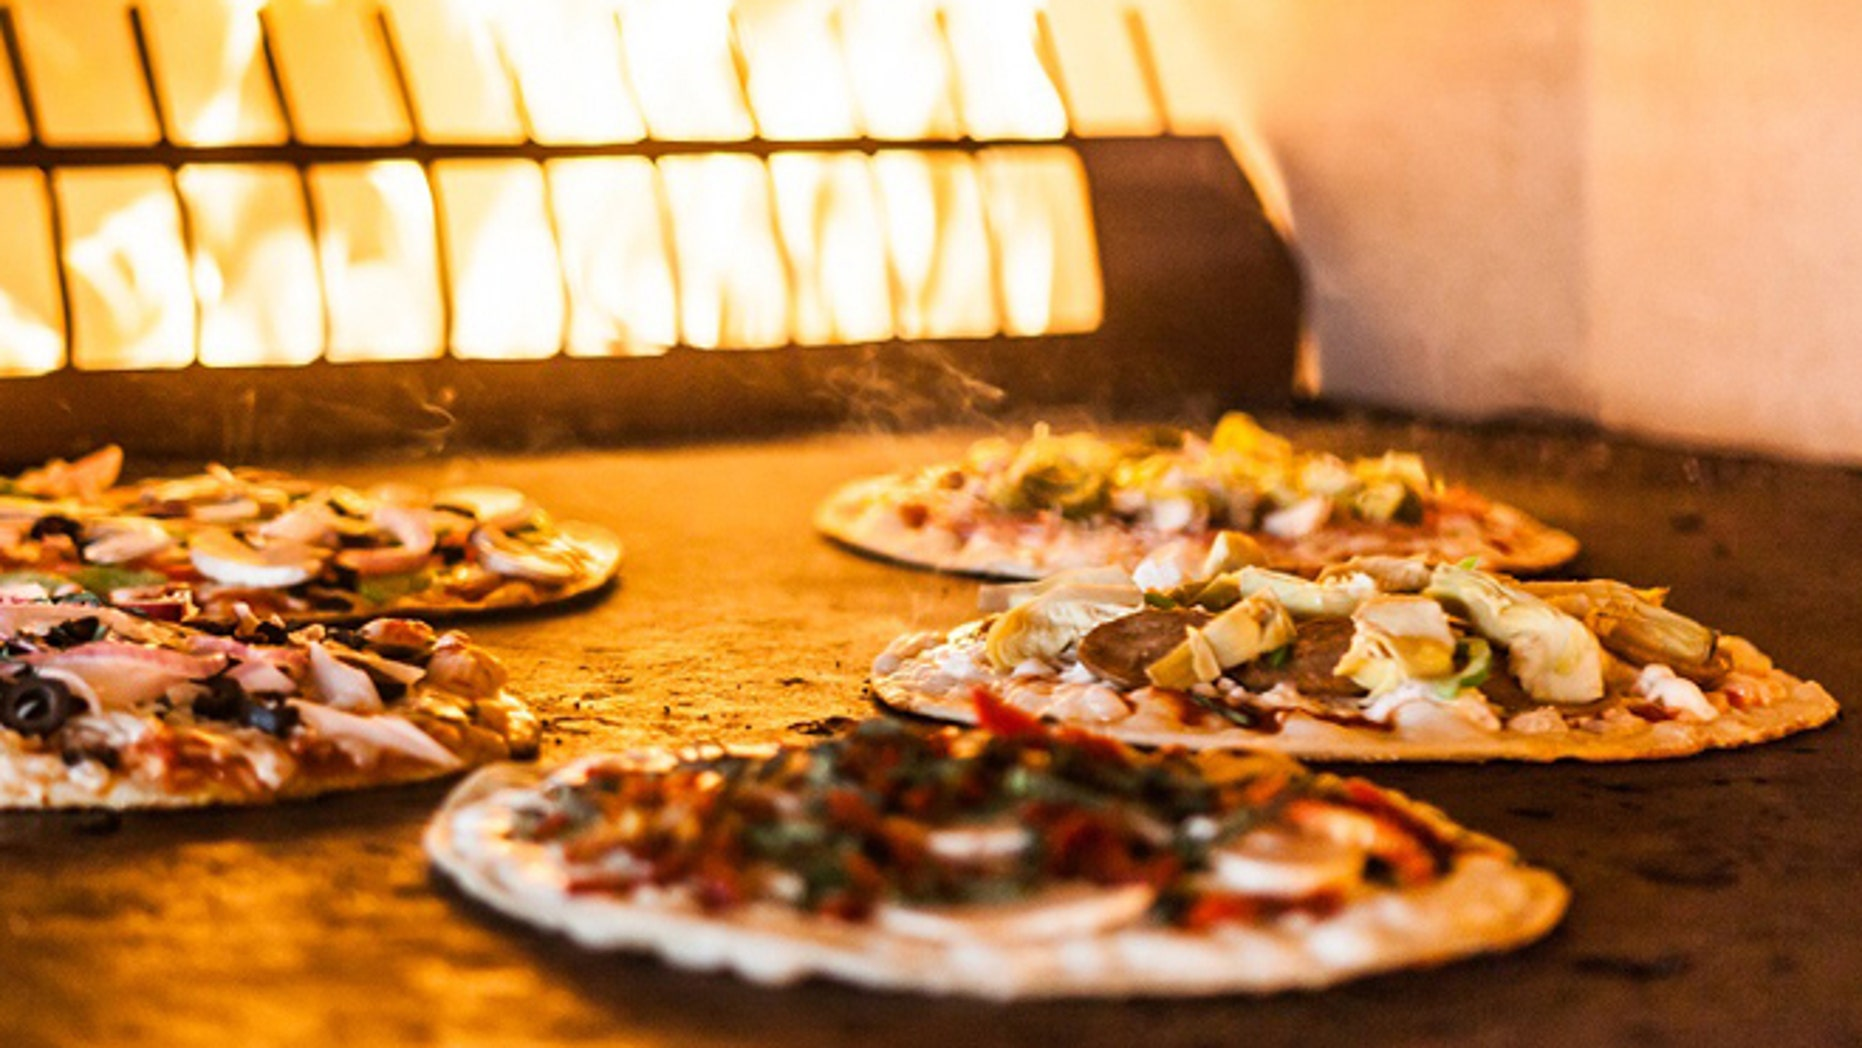 These artisanal  pizza parlors can get customers personal pizza within 10 minutes.